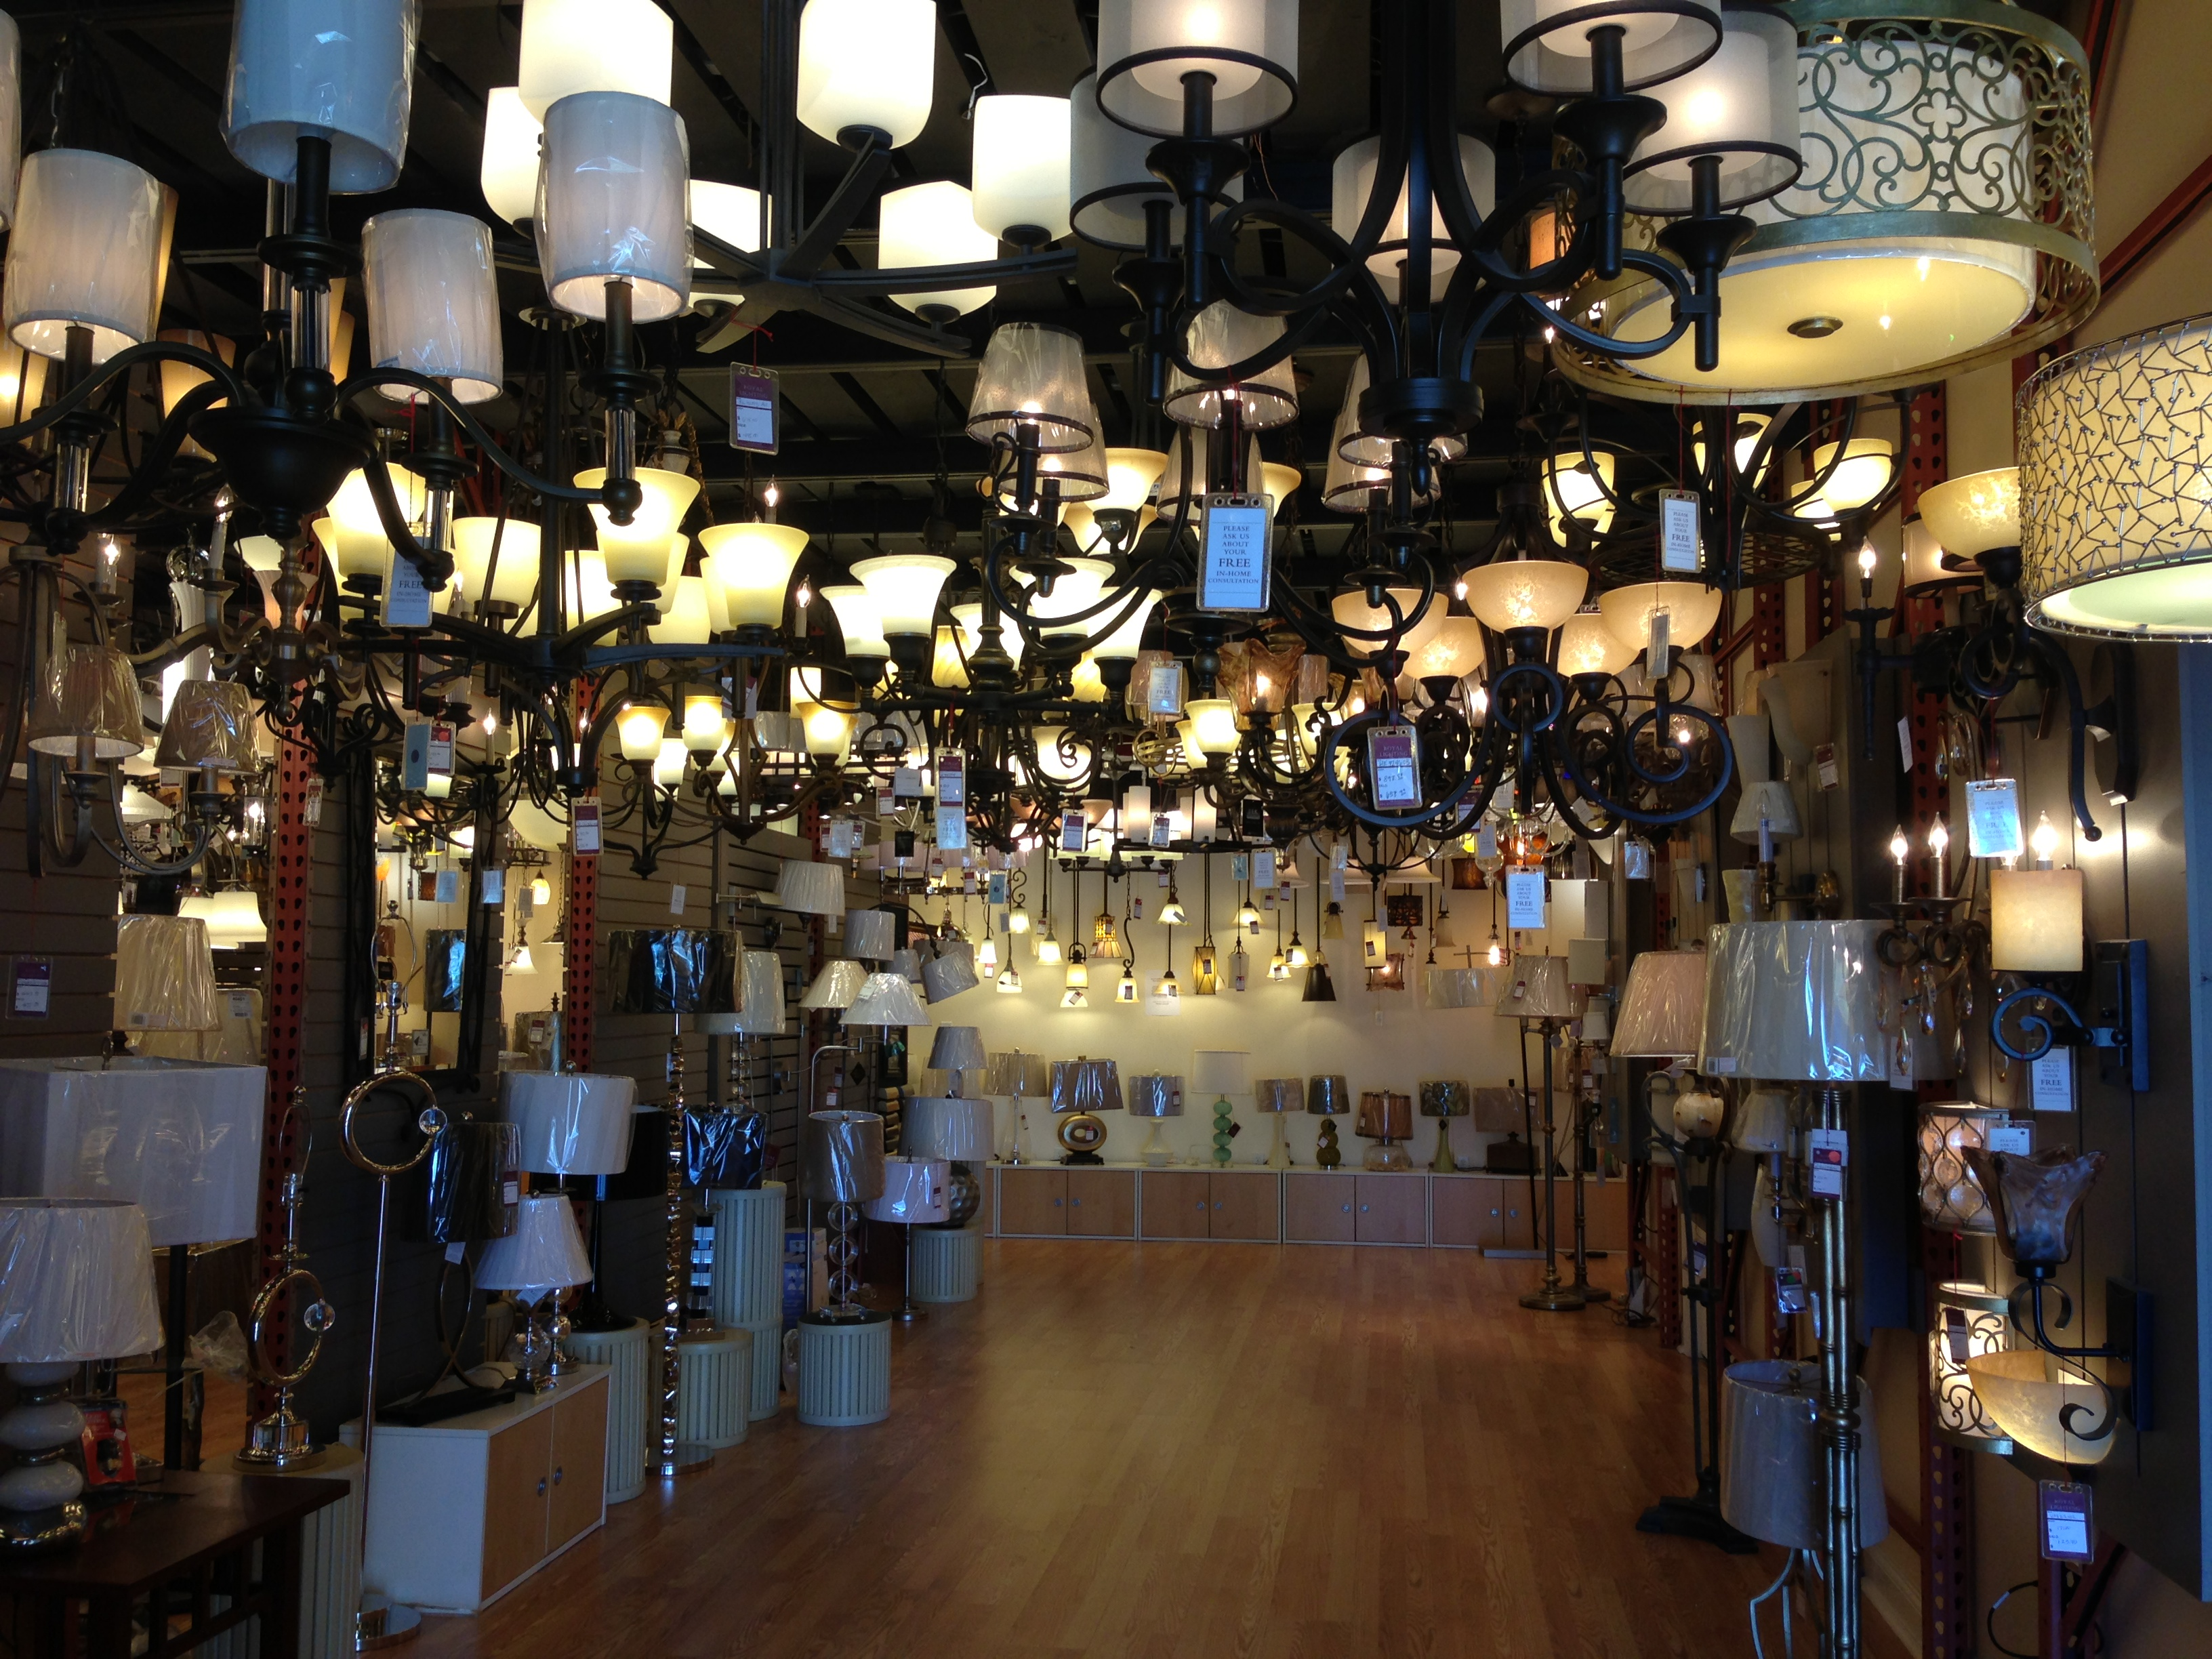 Take A Look At The Best Lighting Stores In Los Angeles 4 lighting stores in los angeles Take A Look At The Best Lighting Stores In Los Angeles Take A Look At The Best Lighting Stores In Los Angeles 3